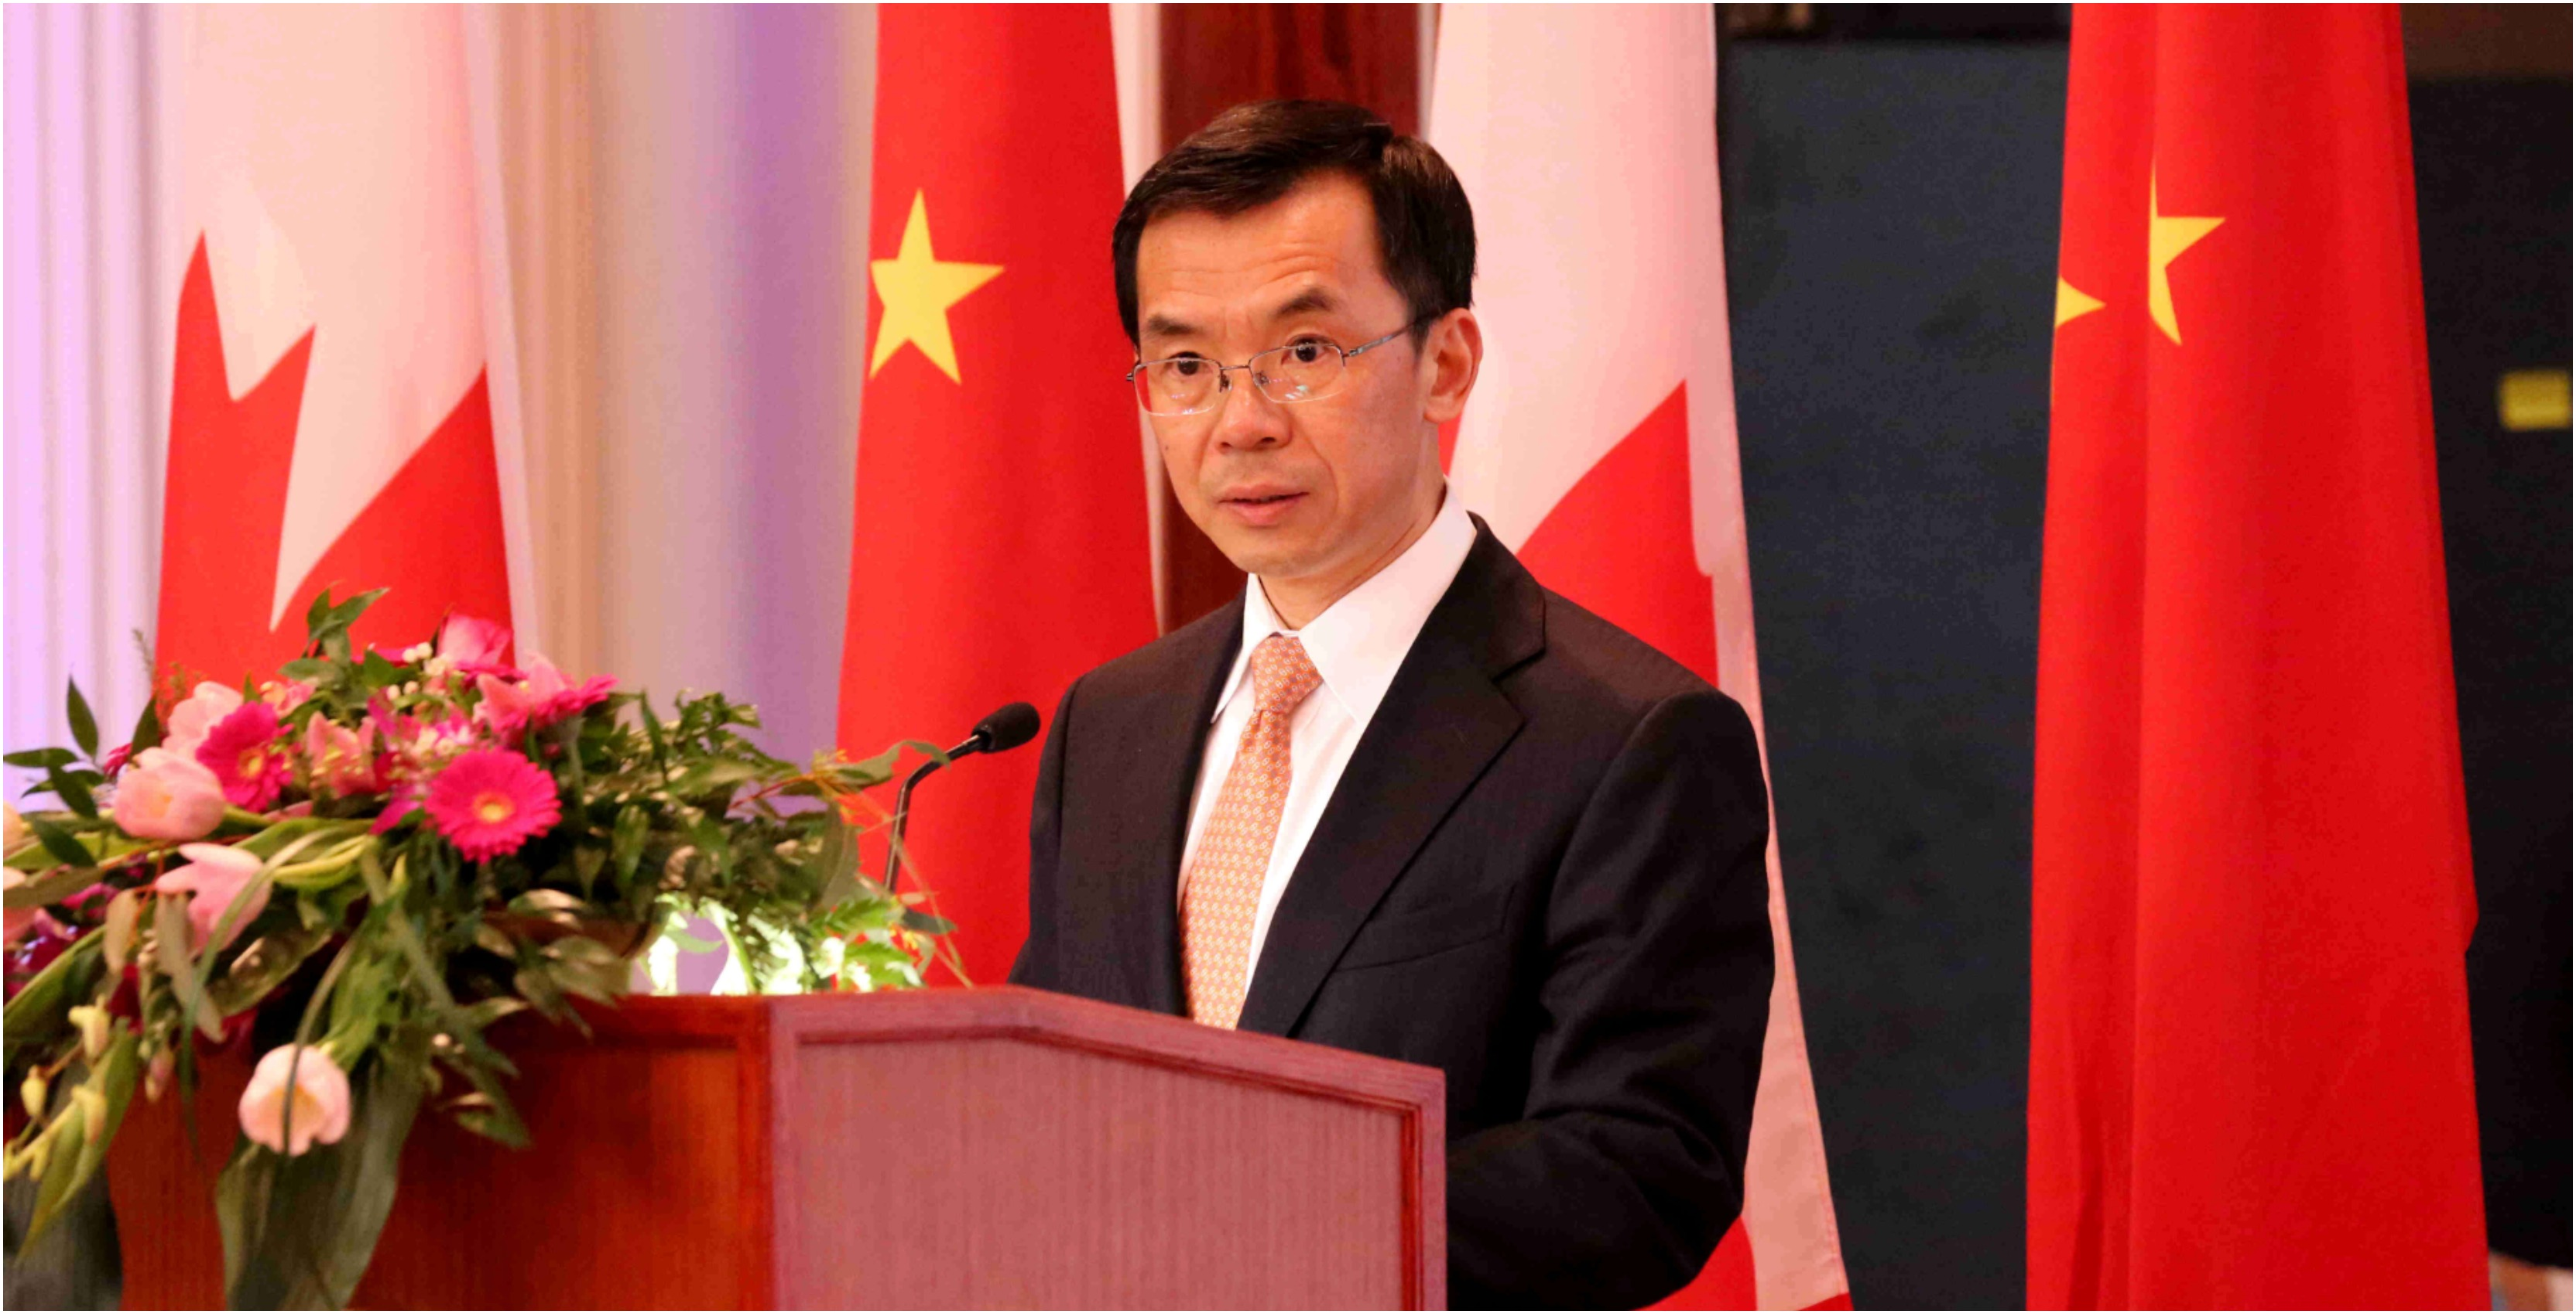 Chinese ambassador accuses Canada of 'white supremacy' in Huawei case